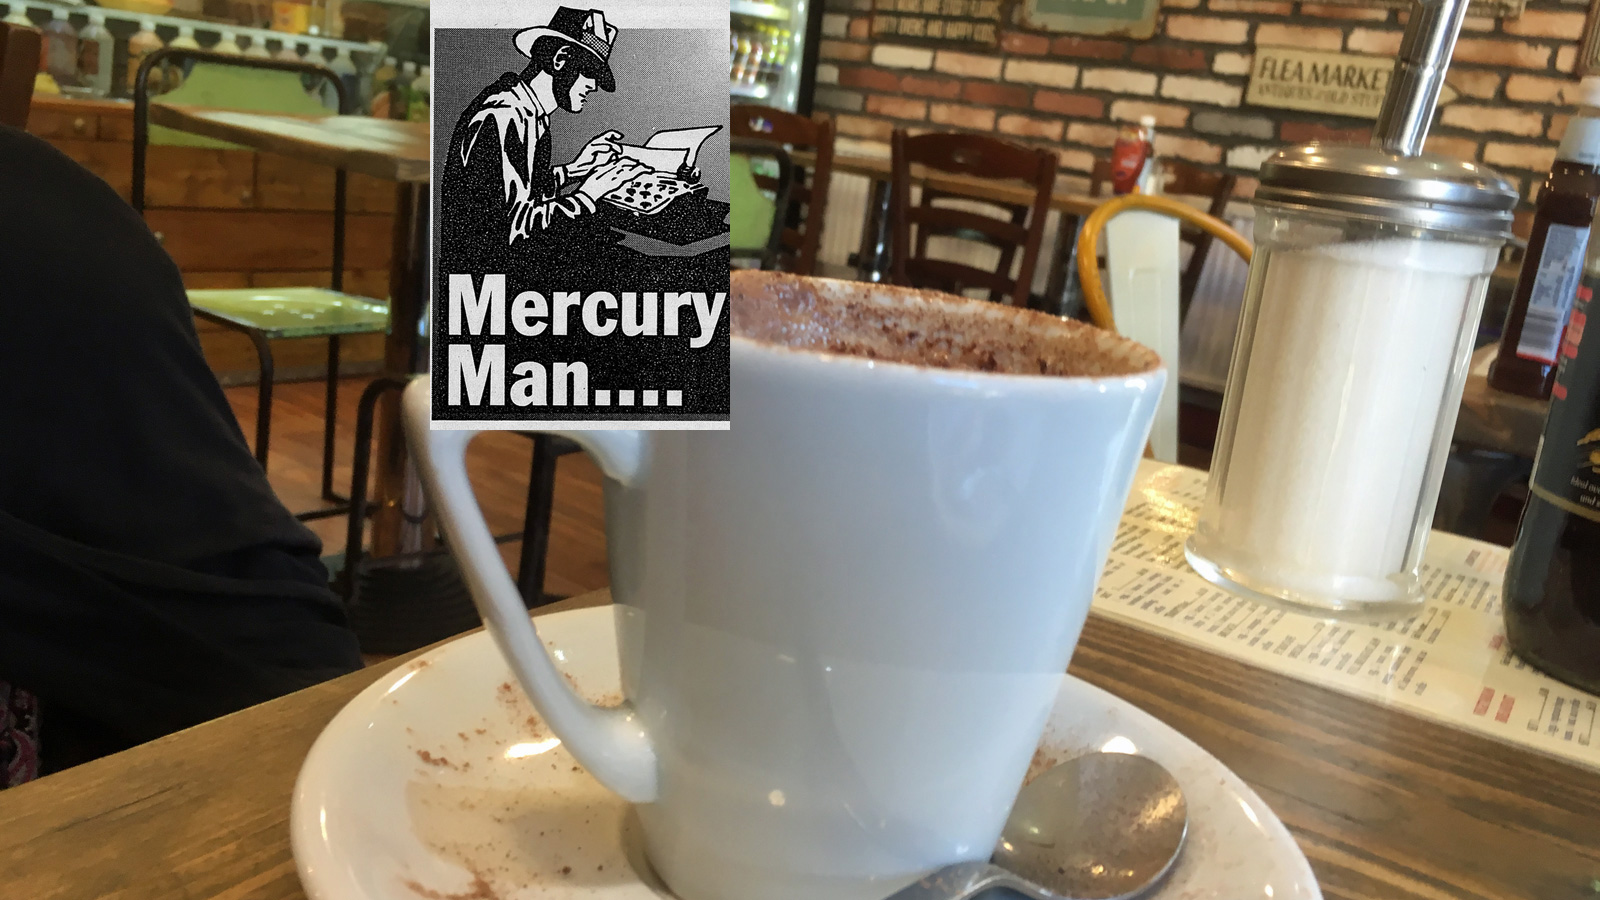 Know a SE London people person who makes you smile? Let Mercury Man know…